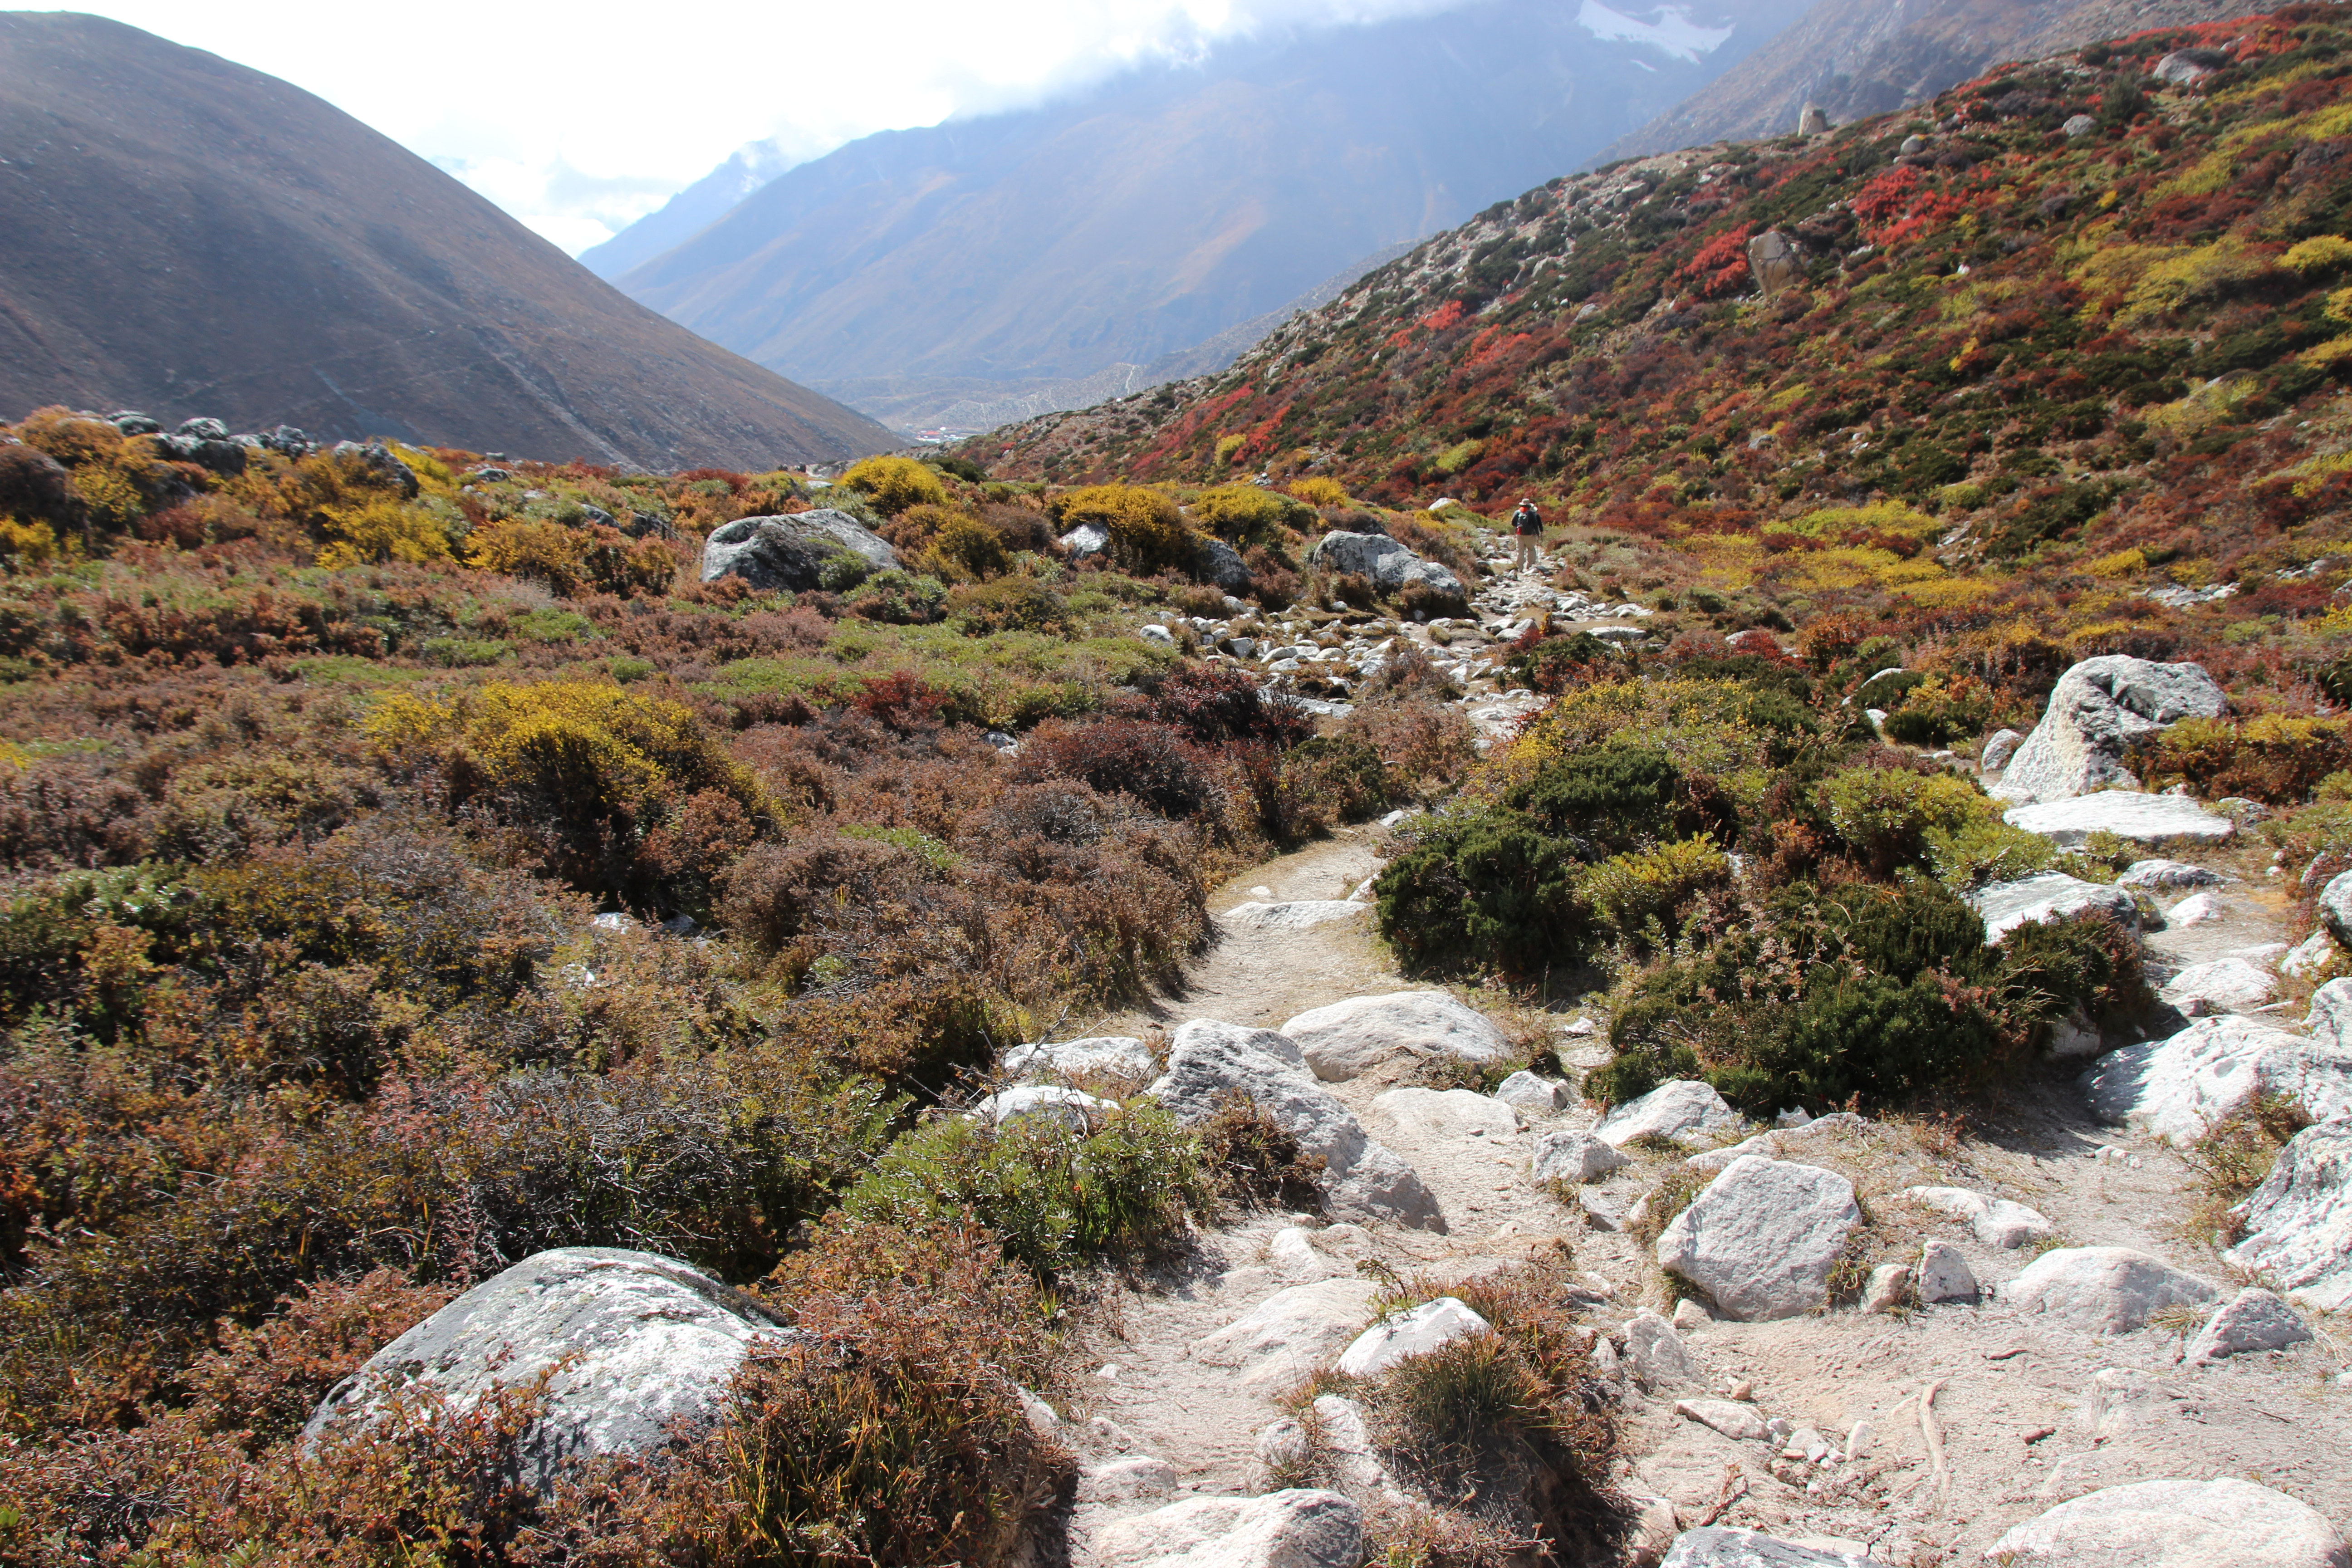 Trail to Chhukung Valley